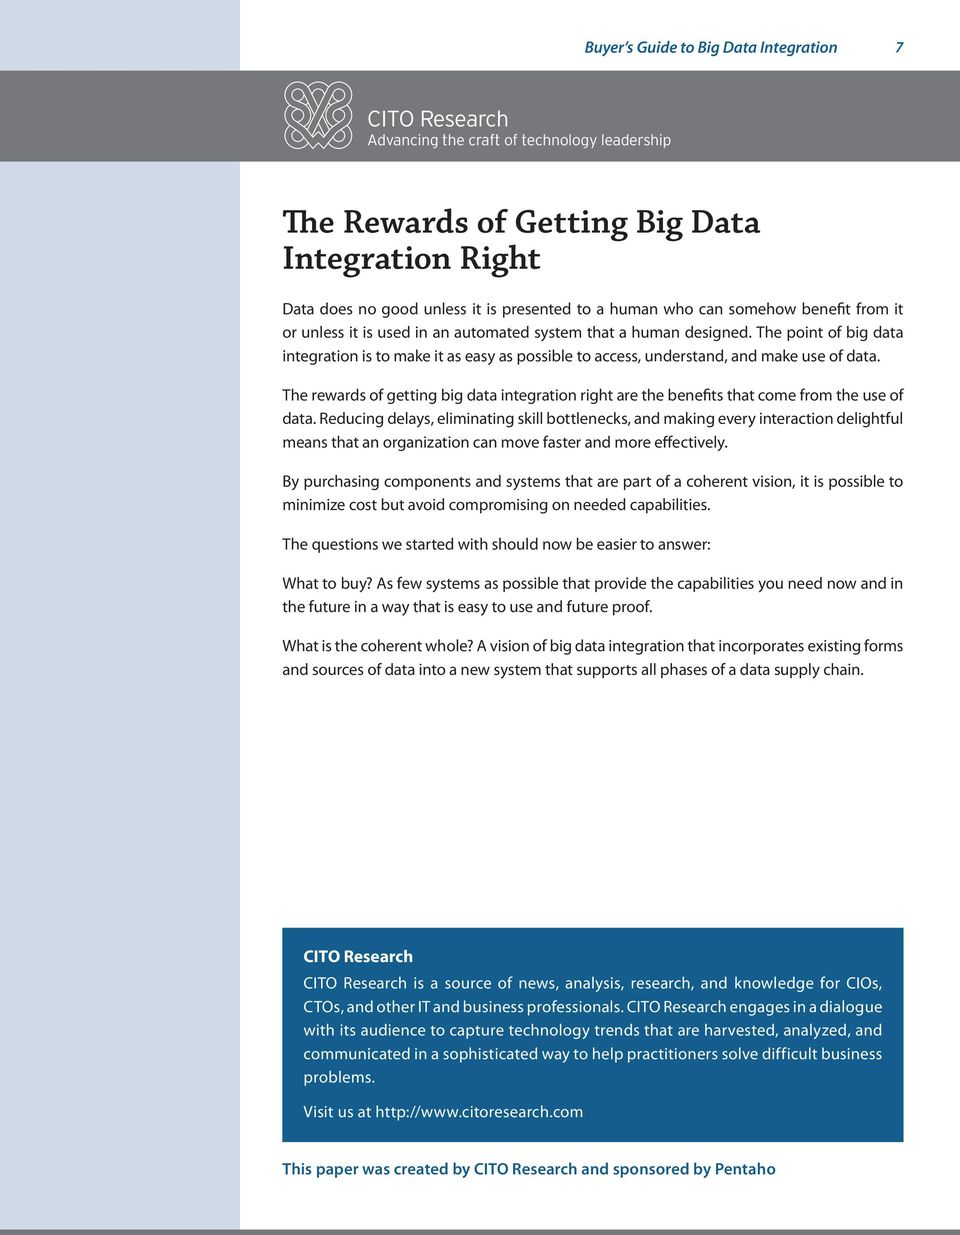 The rewards of getting big data integration right are the benefits that come from the use of data.